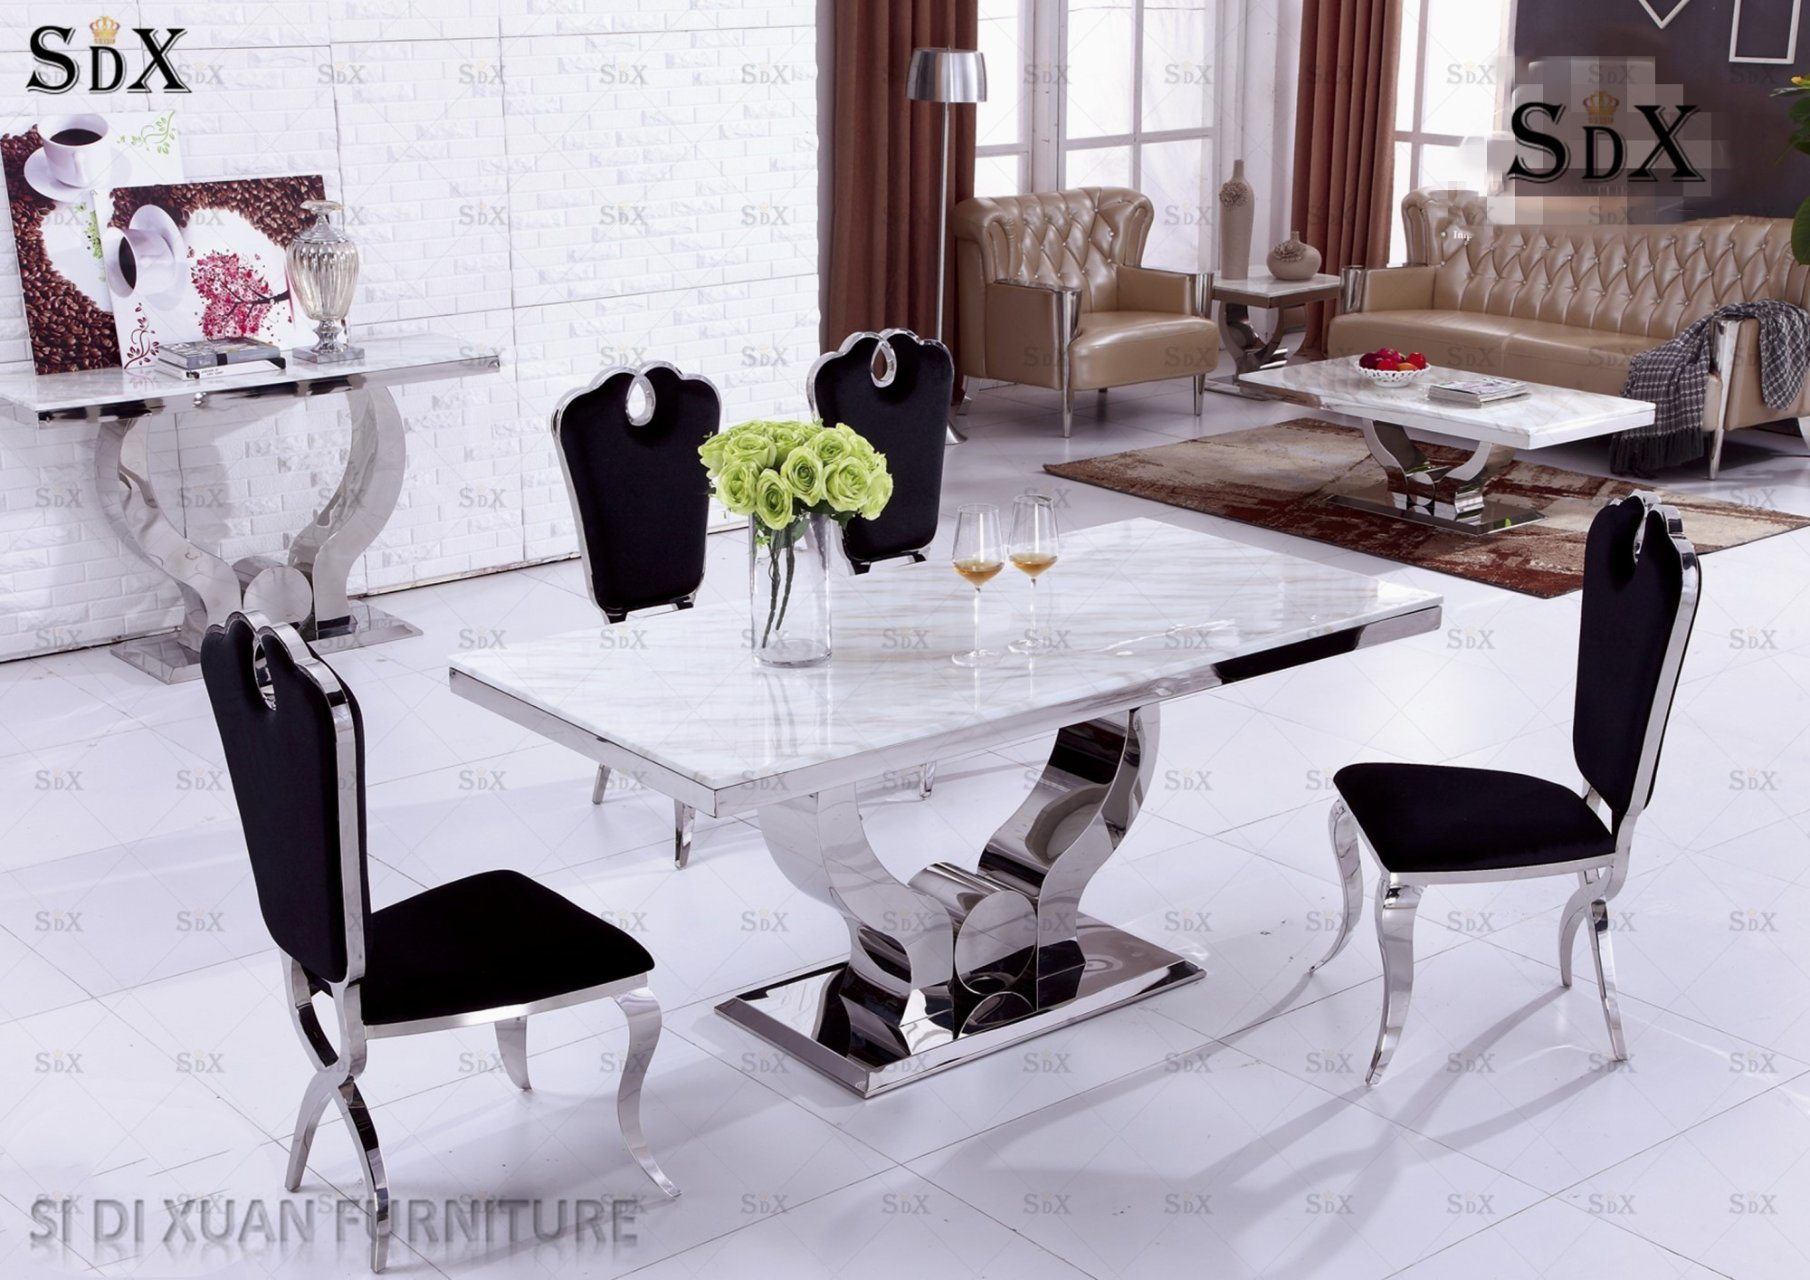 China Modern Glass Dining Room Furniture Set Dining Table With 6 Chairs China Table Dining Table